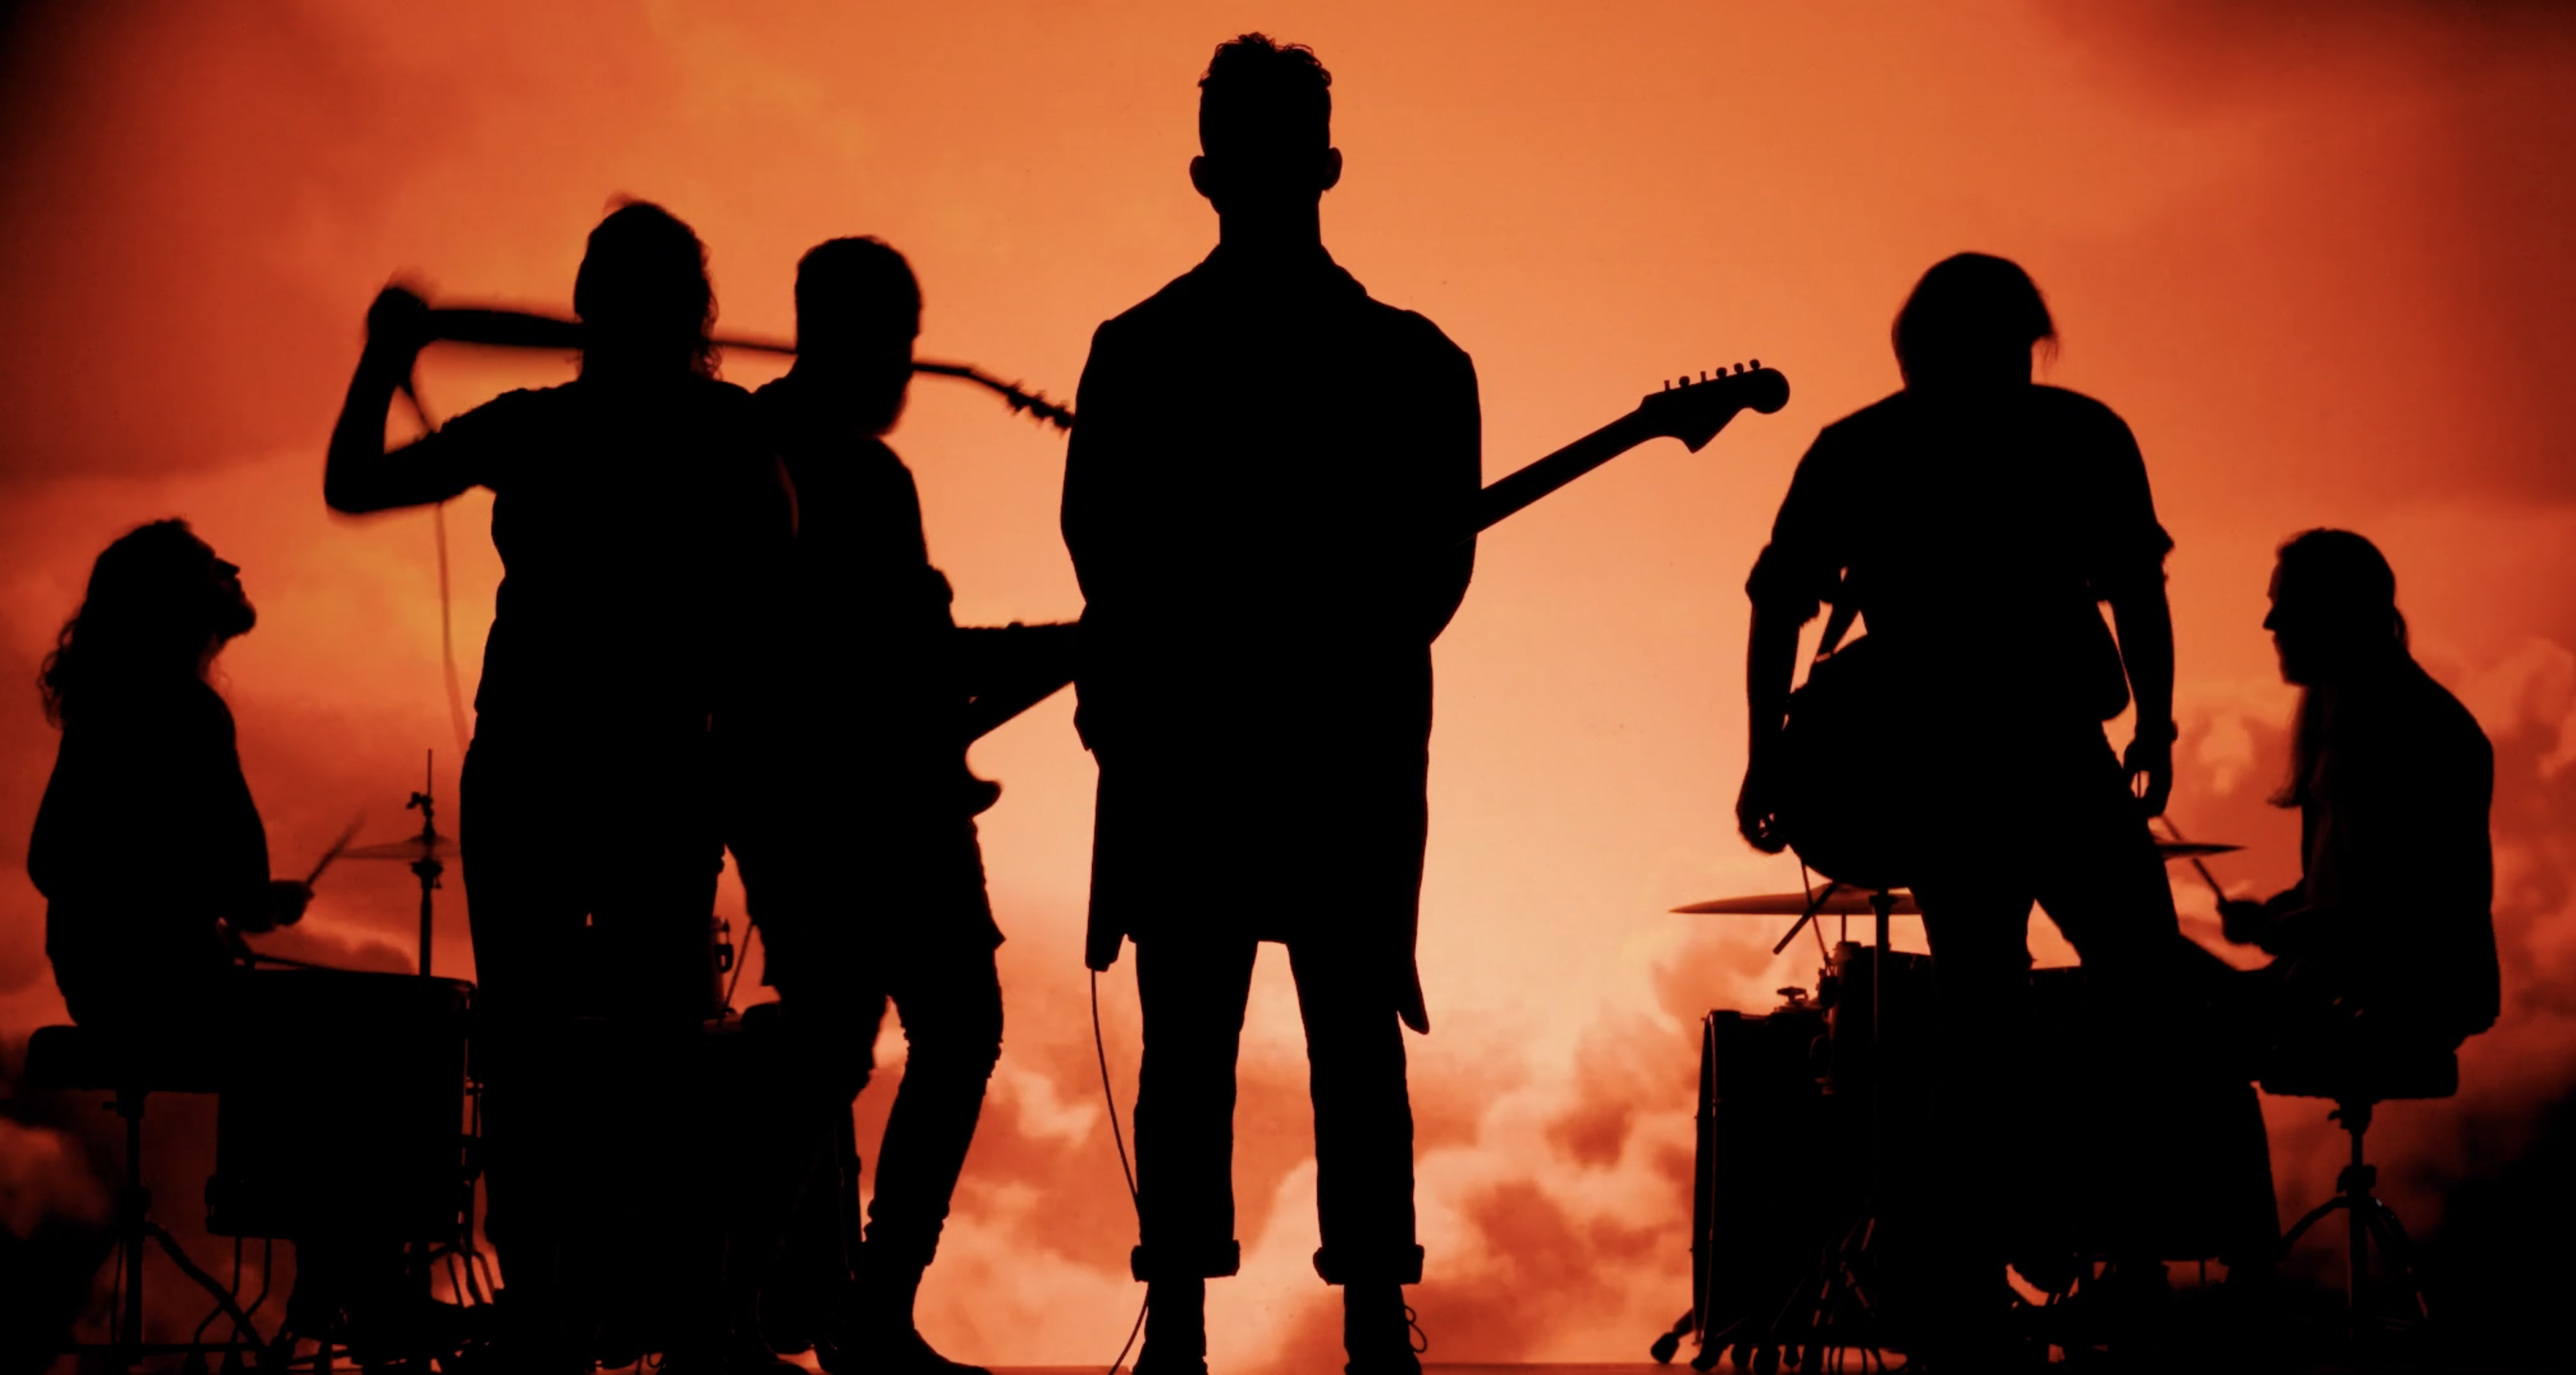 Thumpers silhouette during their music video